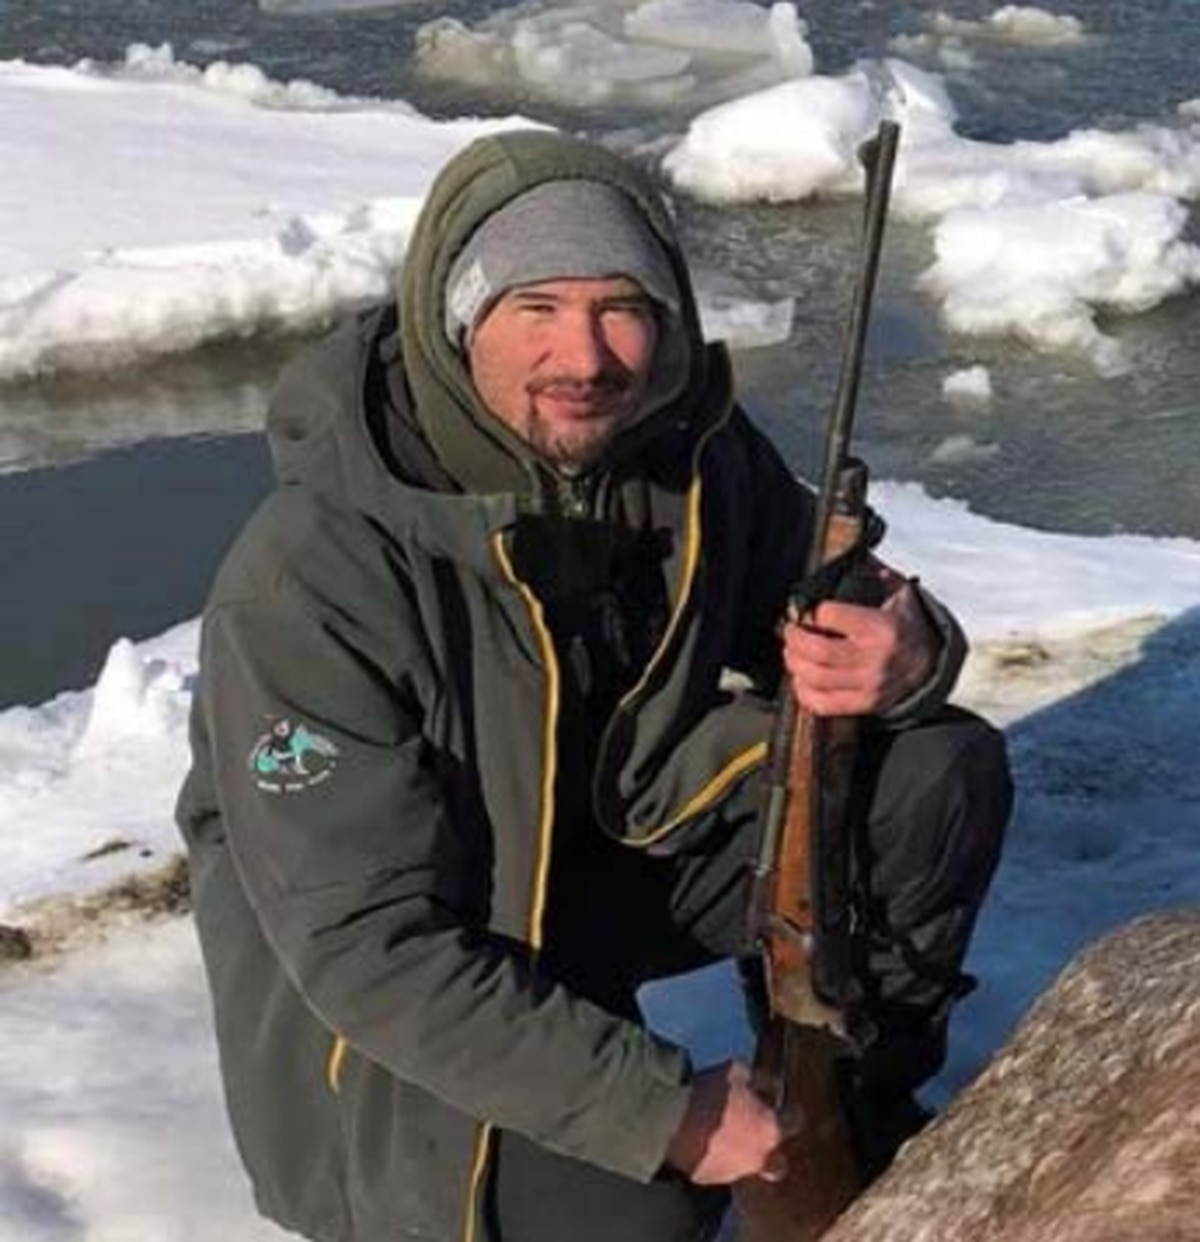 Timothy Beebe, 48, left the Western Alaska village of Eek for a 30-mile trip to Quinhagak around 7 p.m. Saturday but never arrived, National Guard officials said. (Photo courtesy Alaska National Guard)